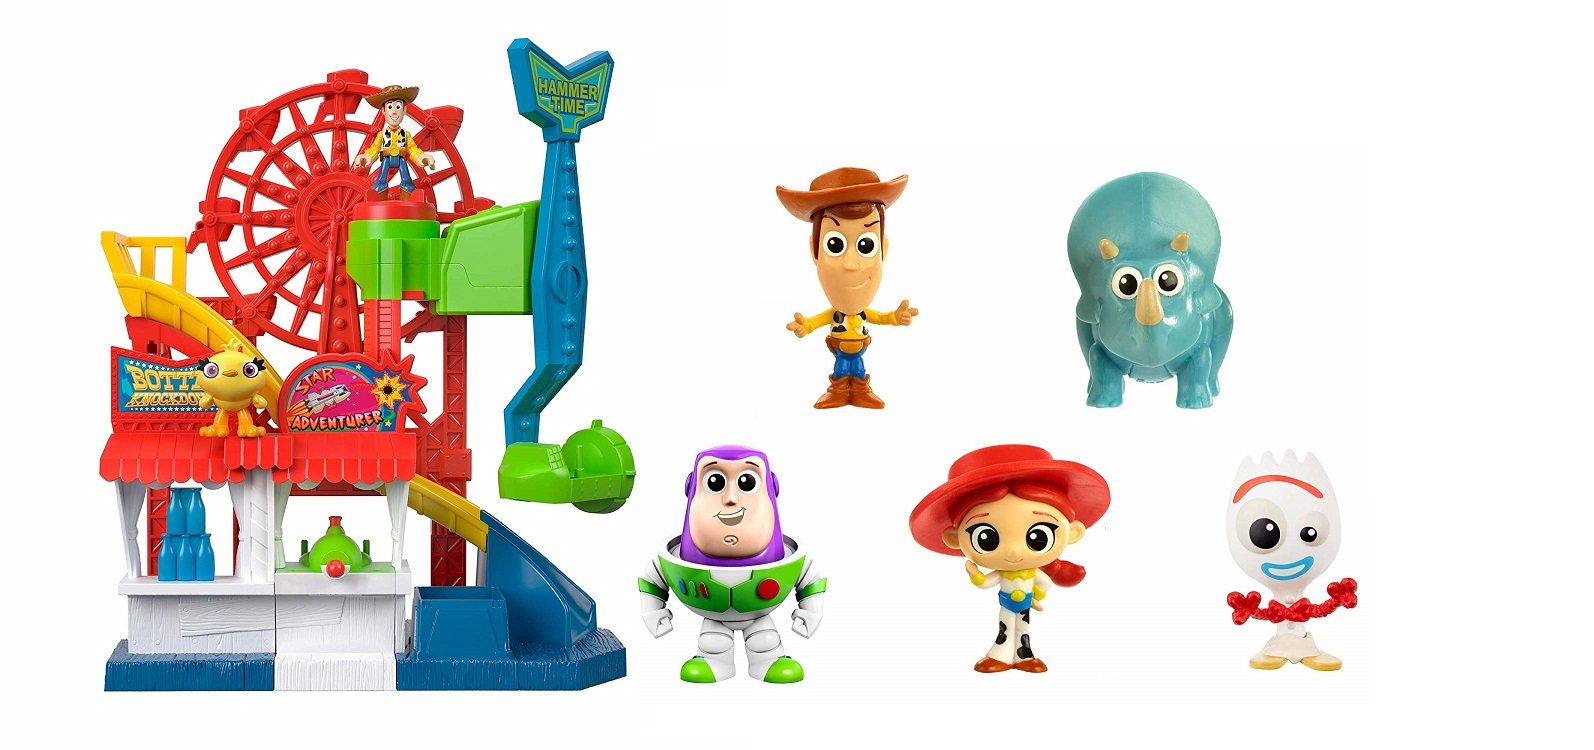 Save up to 40% on Toy Story toys